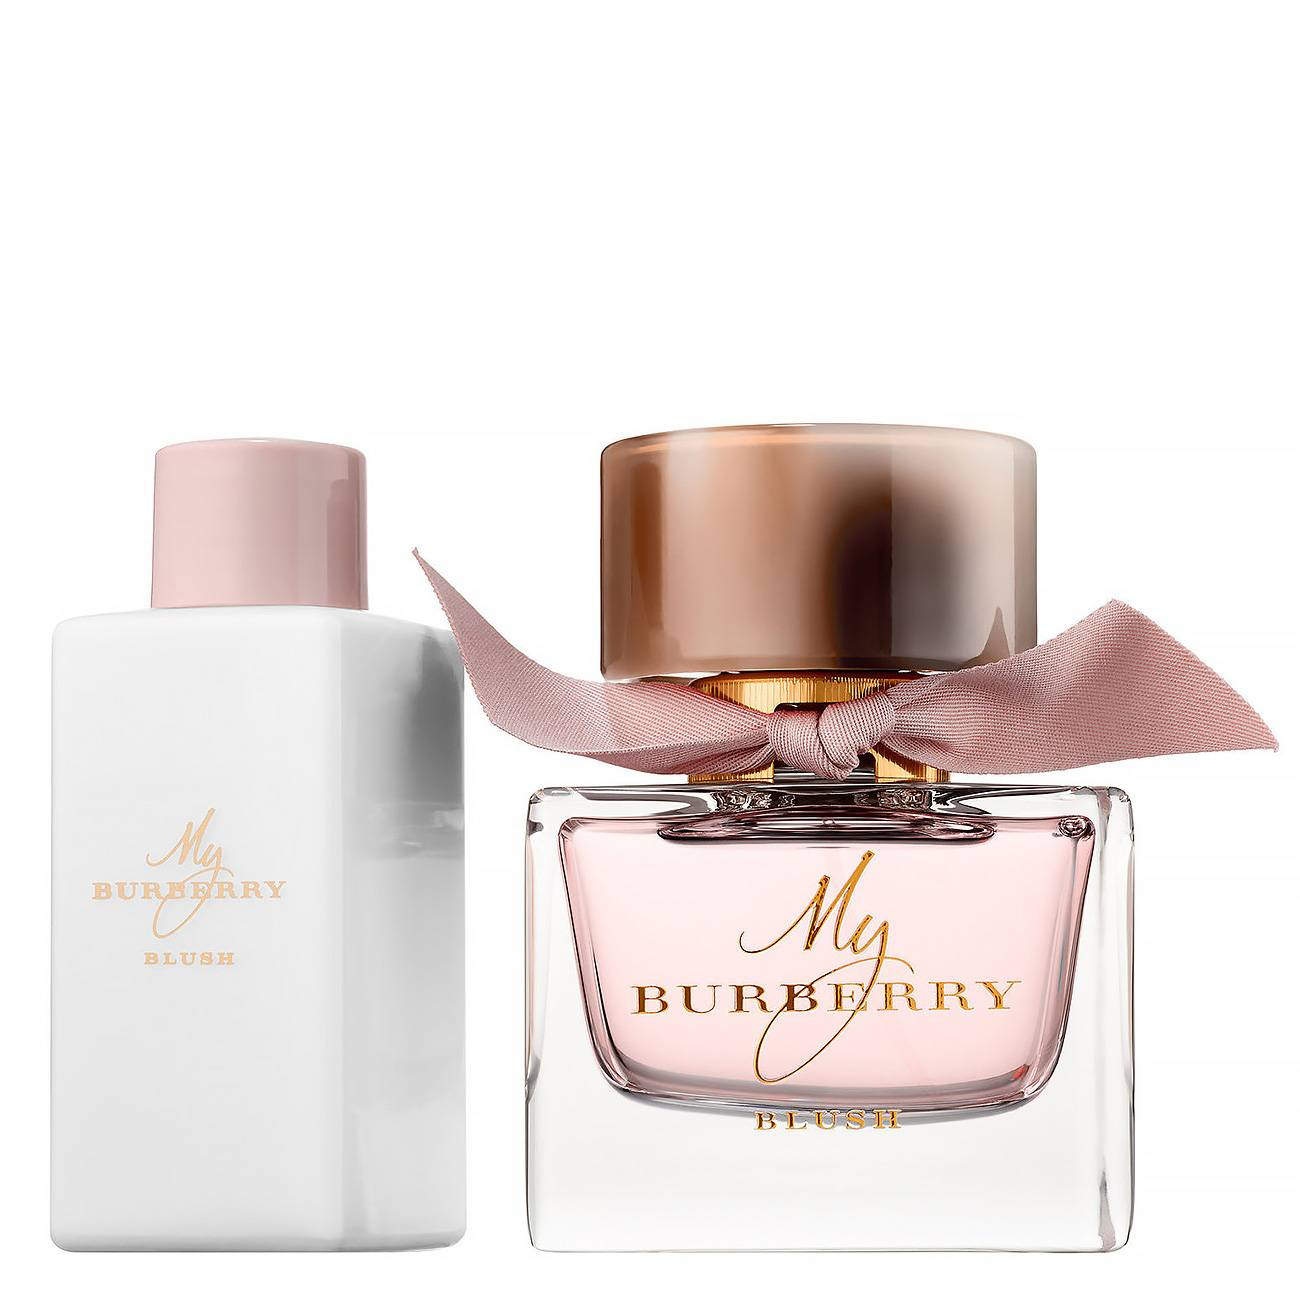 MY BURBERRY SET 165ml imagine produs